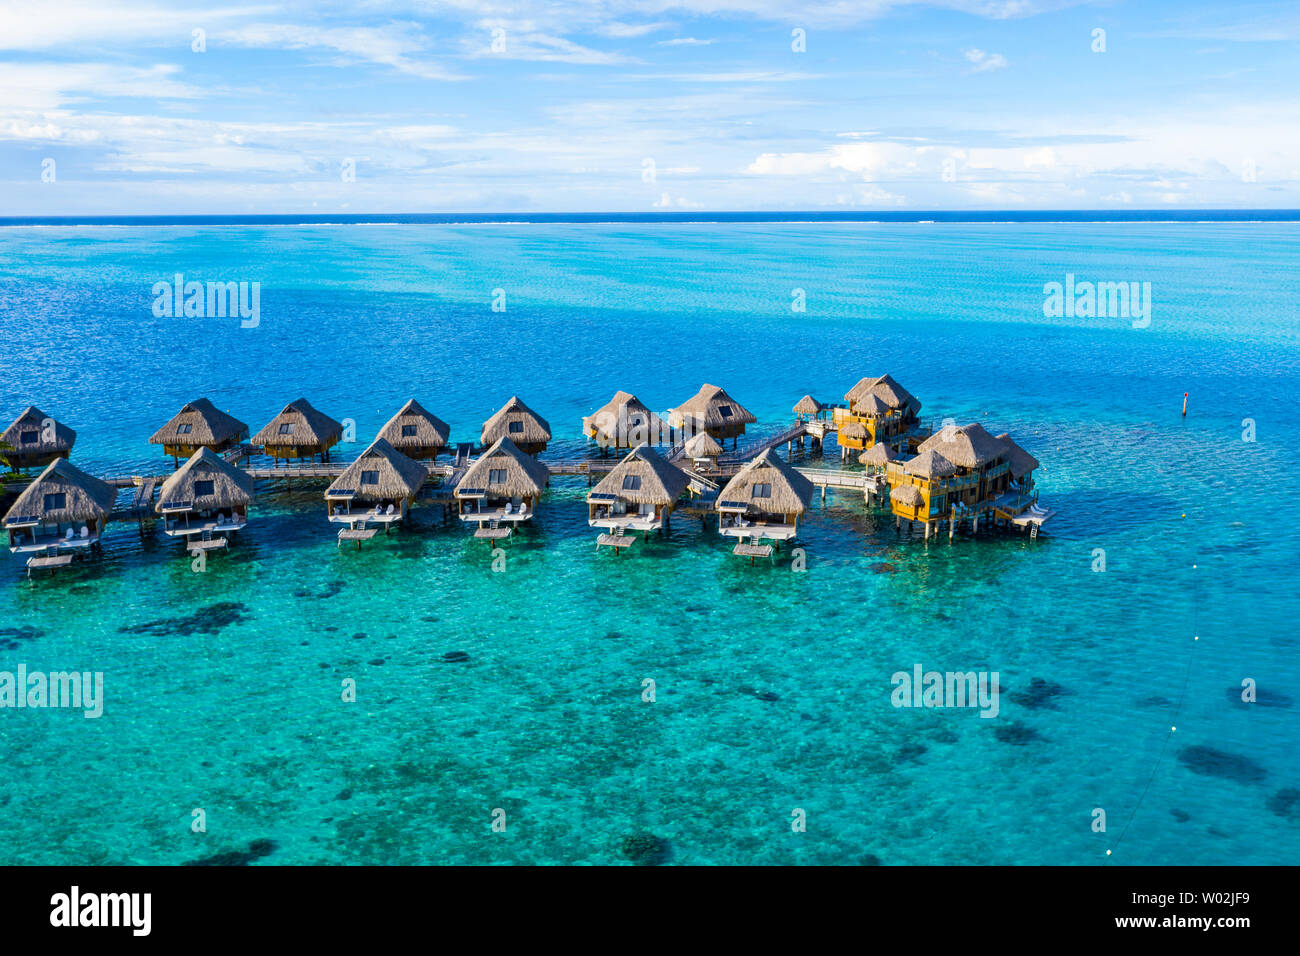 Travel vacation paradise aerial drone video with overwater bungalows in coral reef lagoon sea. Aerial video from Bora Bora, French Polynesia, Tahiti, South Pacific Ocean. Stock Photo